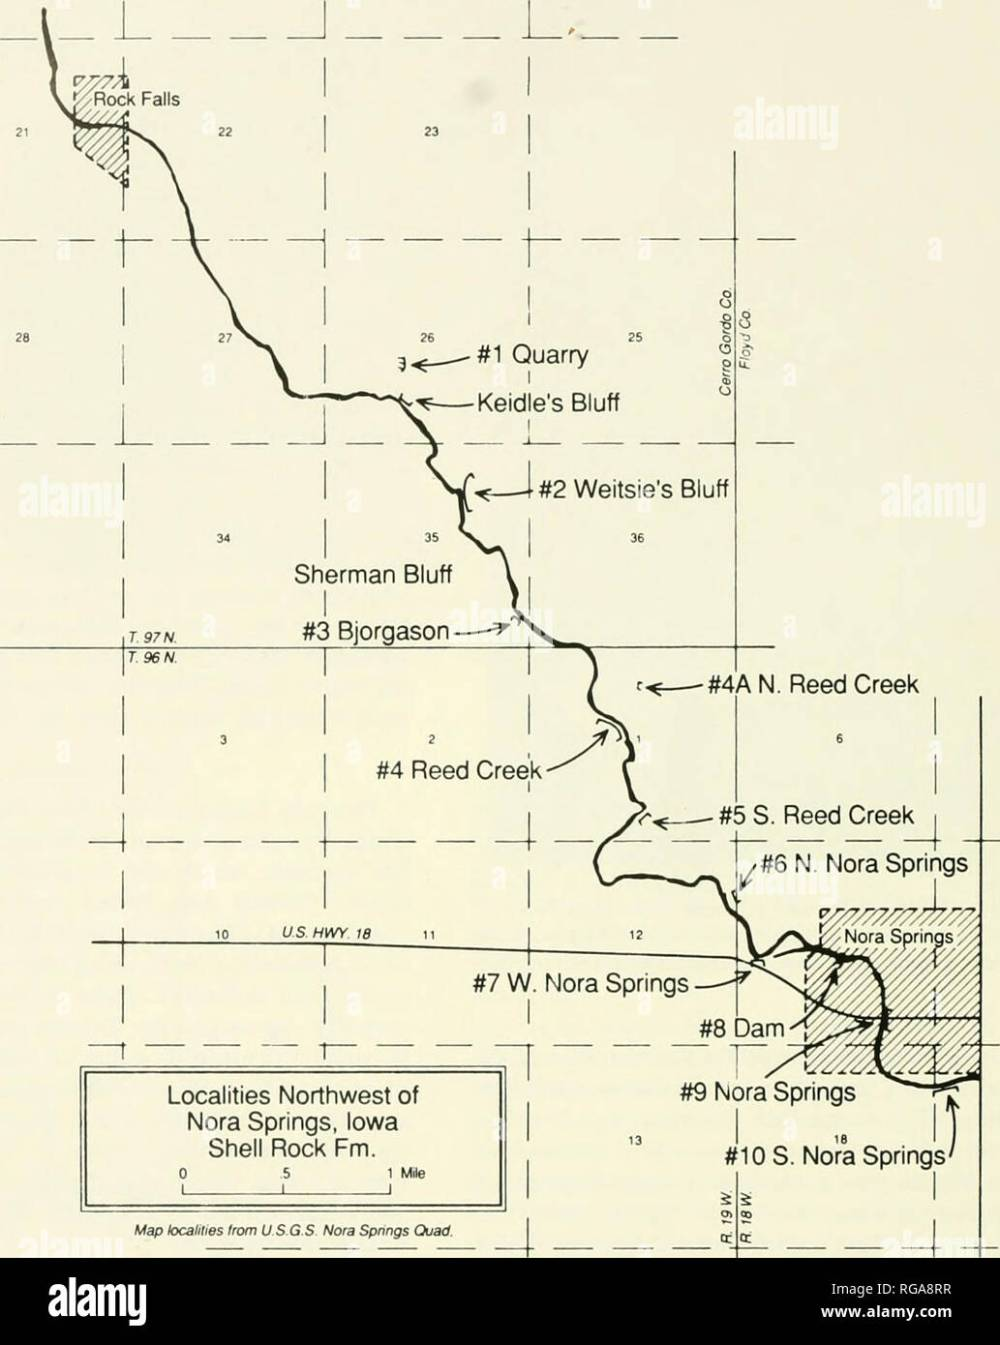 medium resolution of localities where the shell rock formation was studied along the shell rock river northwest of nora springs iowa